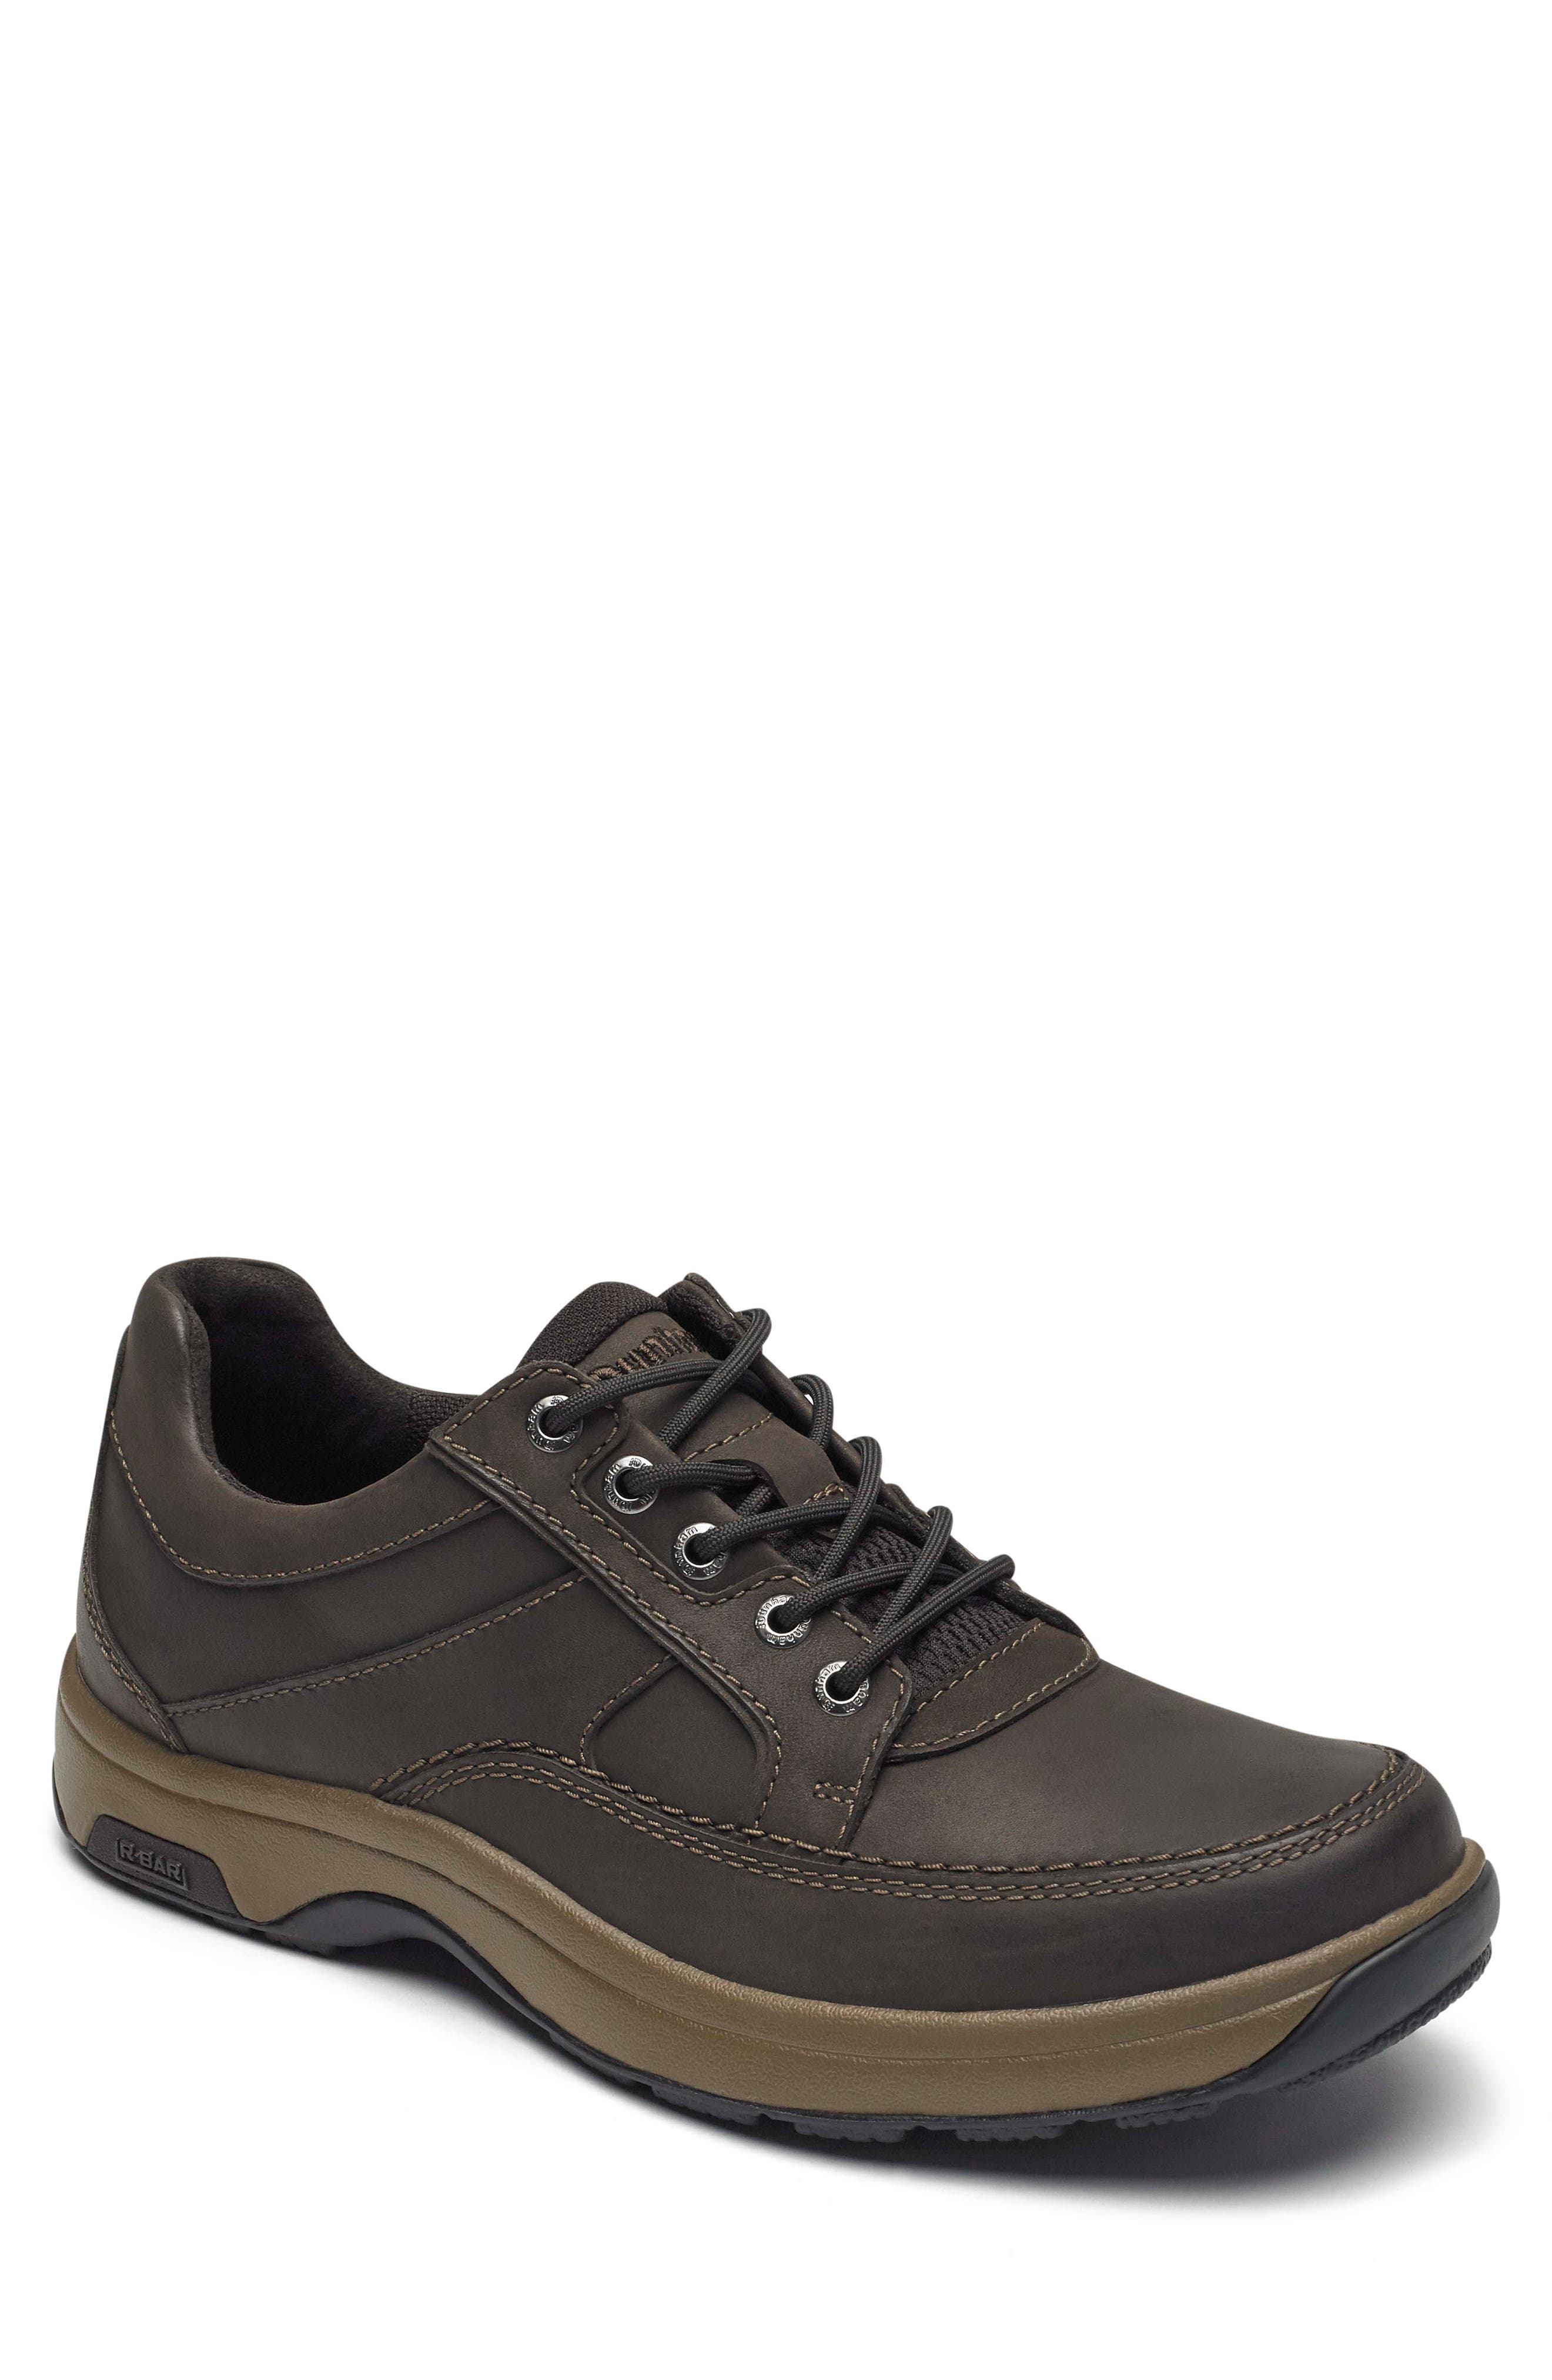 DUNHAM, 'Midland' Sneaker, Main thumbnail 1, color, BROWN LEATHER